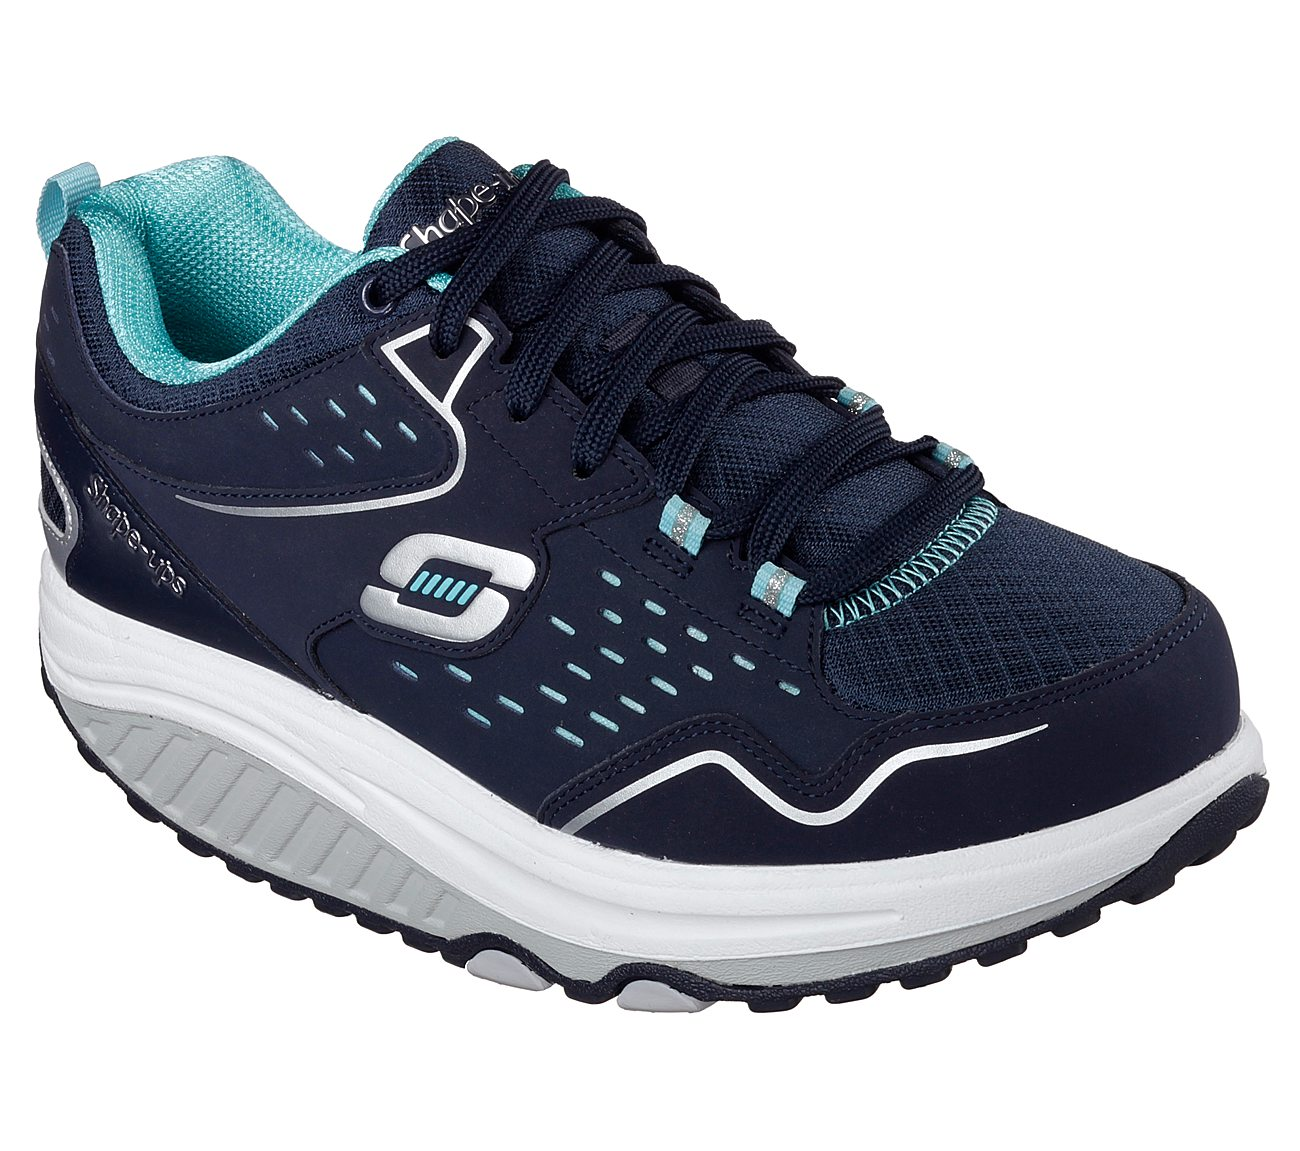 2 Shoes Shape Skechers Comfort Buy Ups Walking 0 Everyday BpxPg